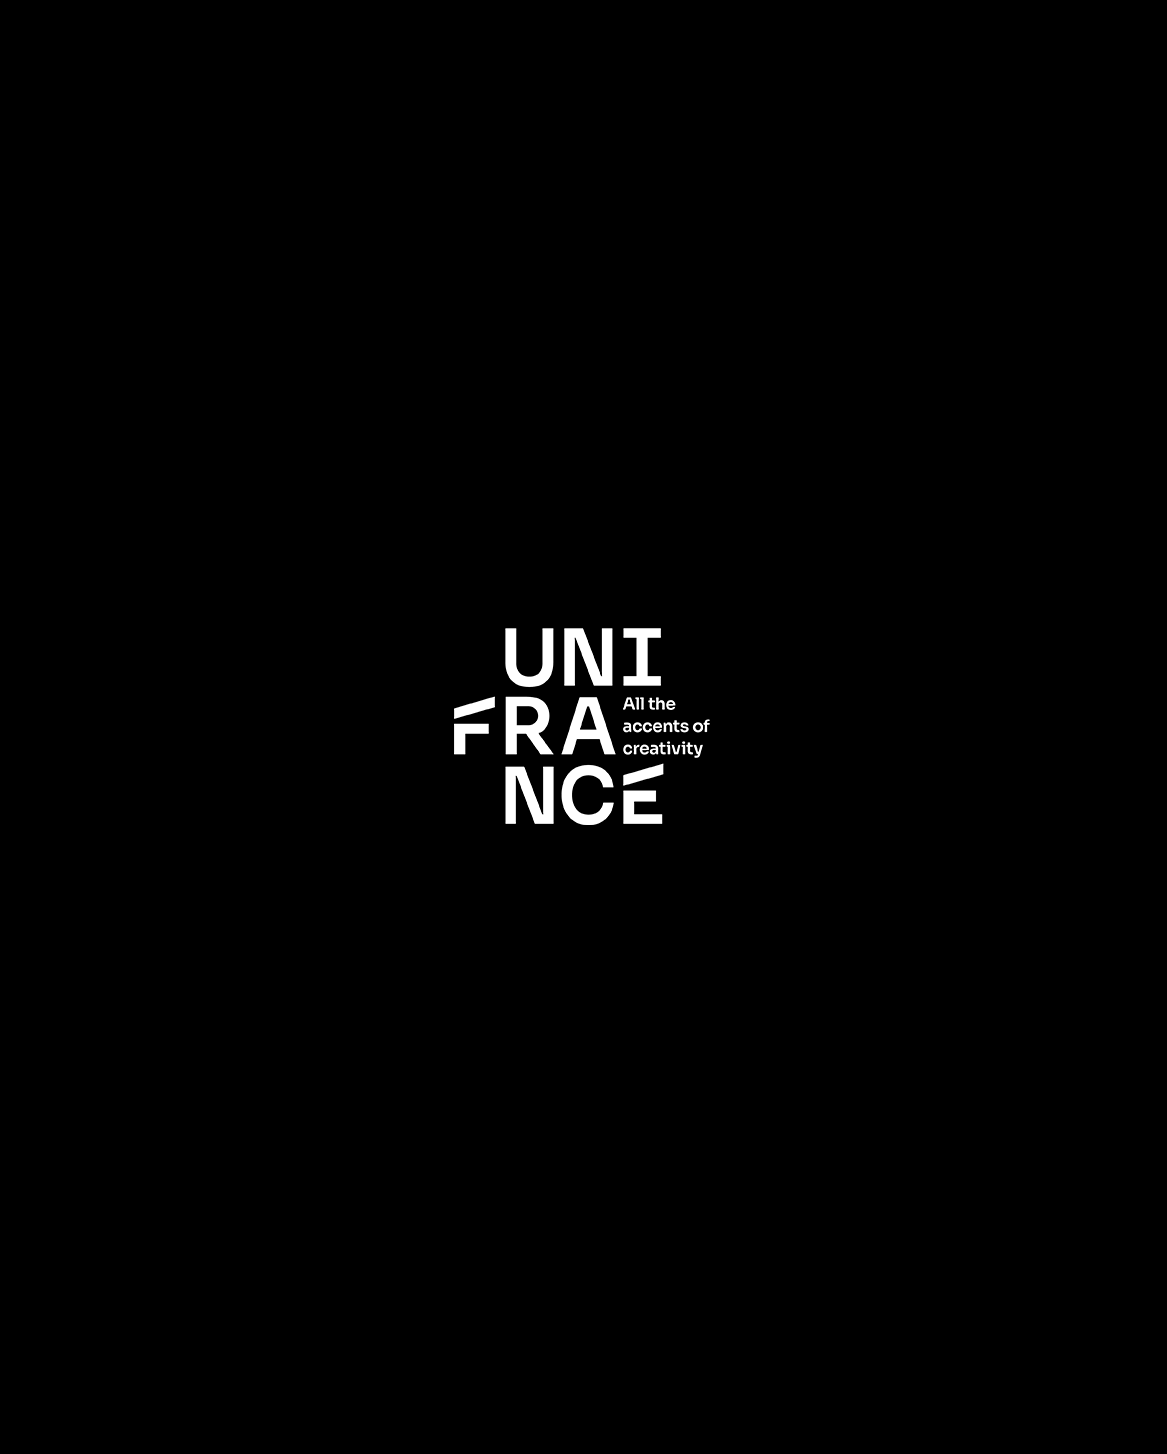 UFE (Unfilmevenement)